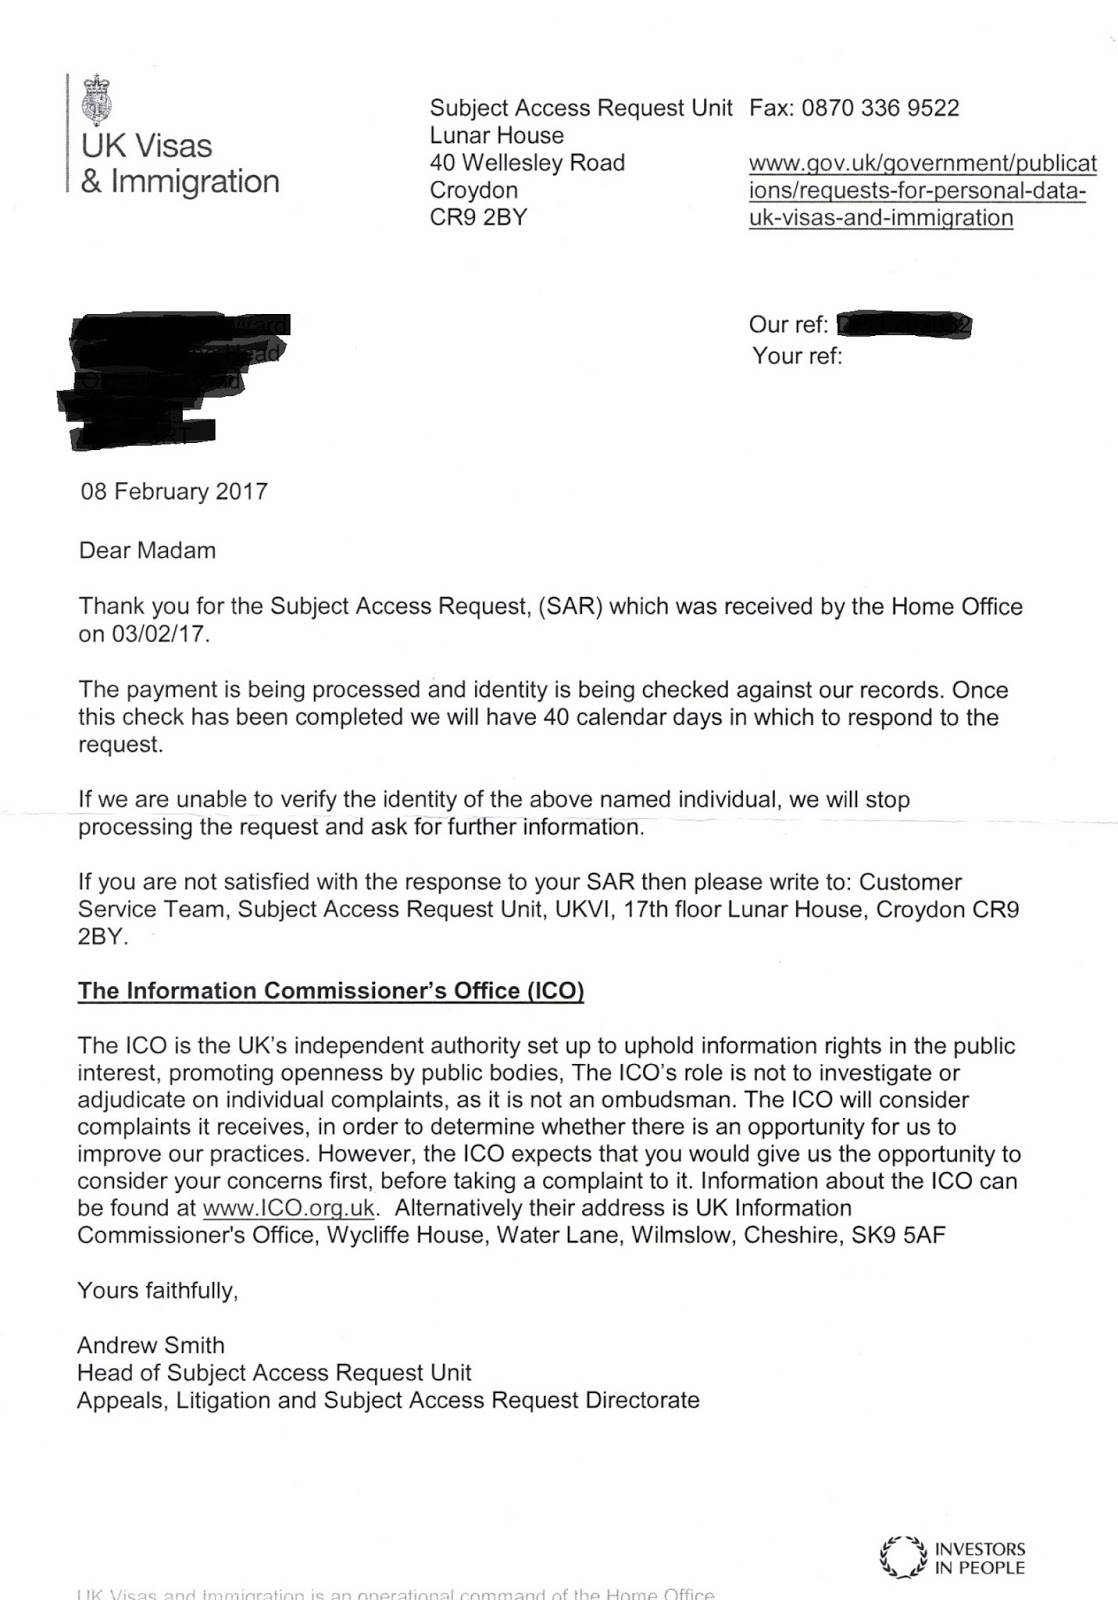 Bad Reason: The UK Home Office and our Subject Access Request